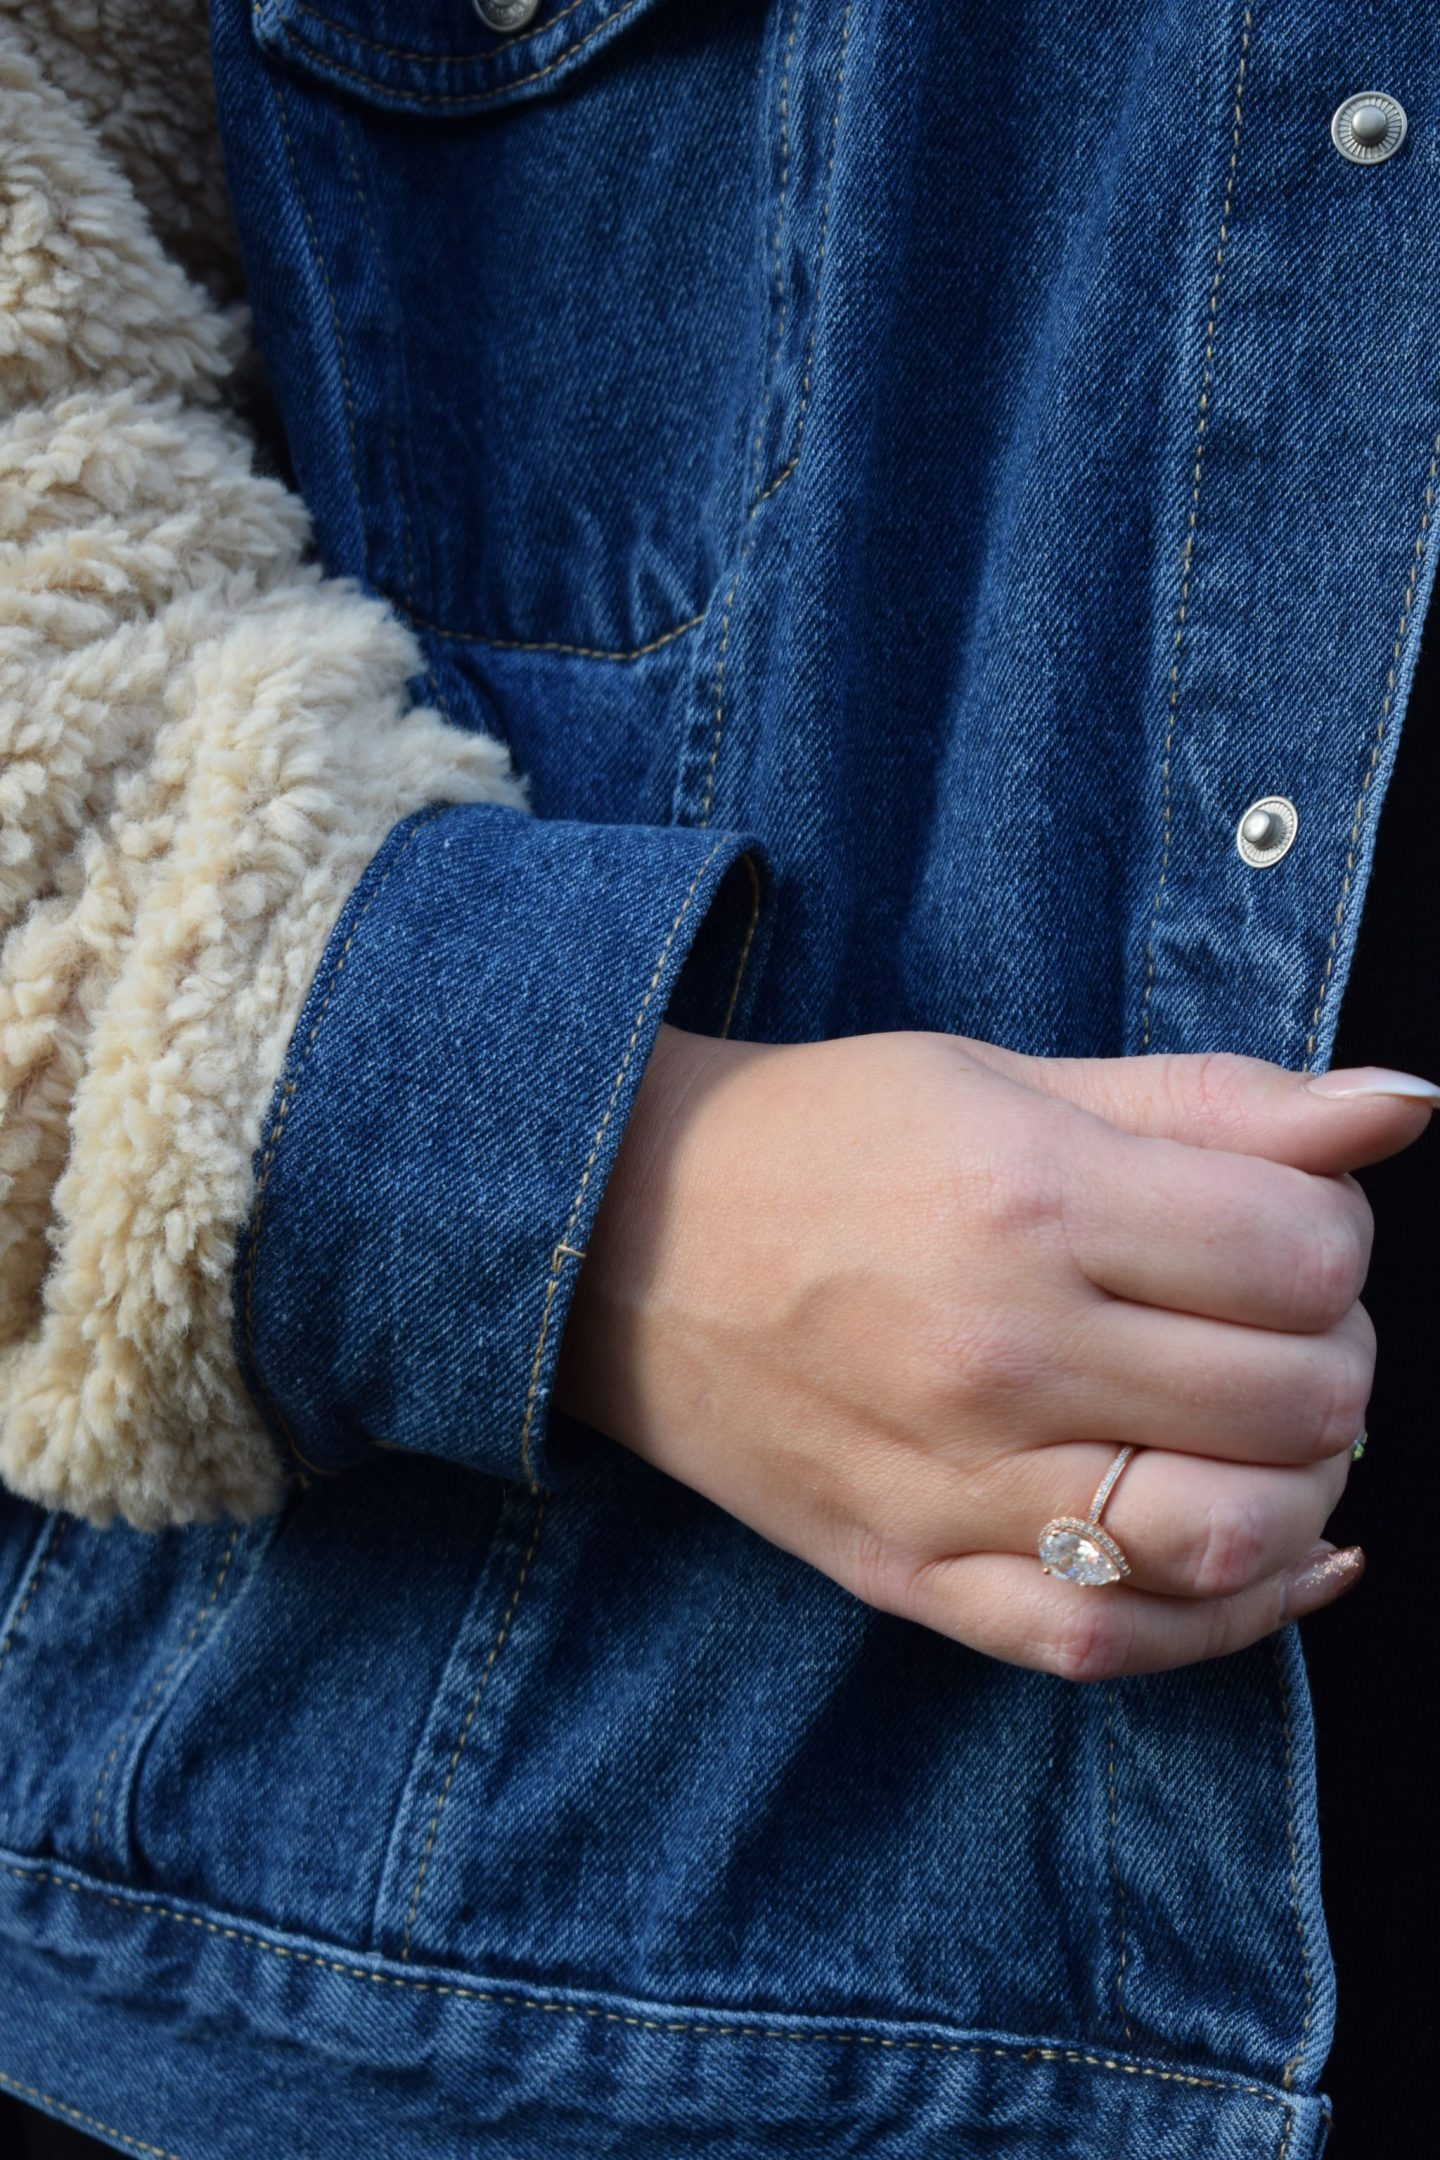 Dani Dyer Teddy Fur Denim Jacket WhatLauraLoves